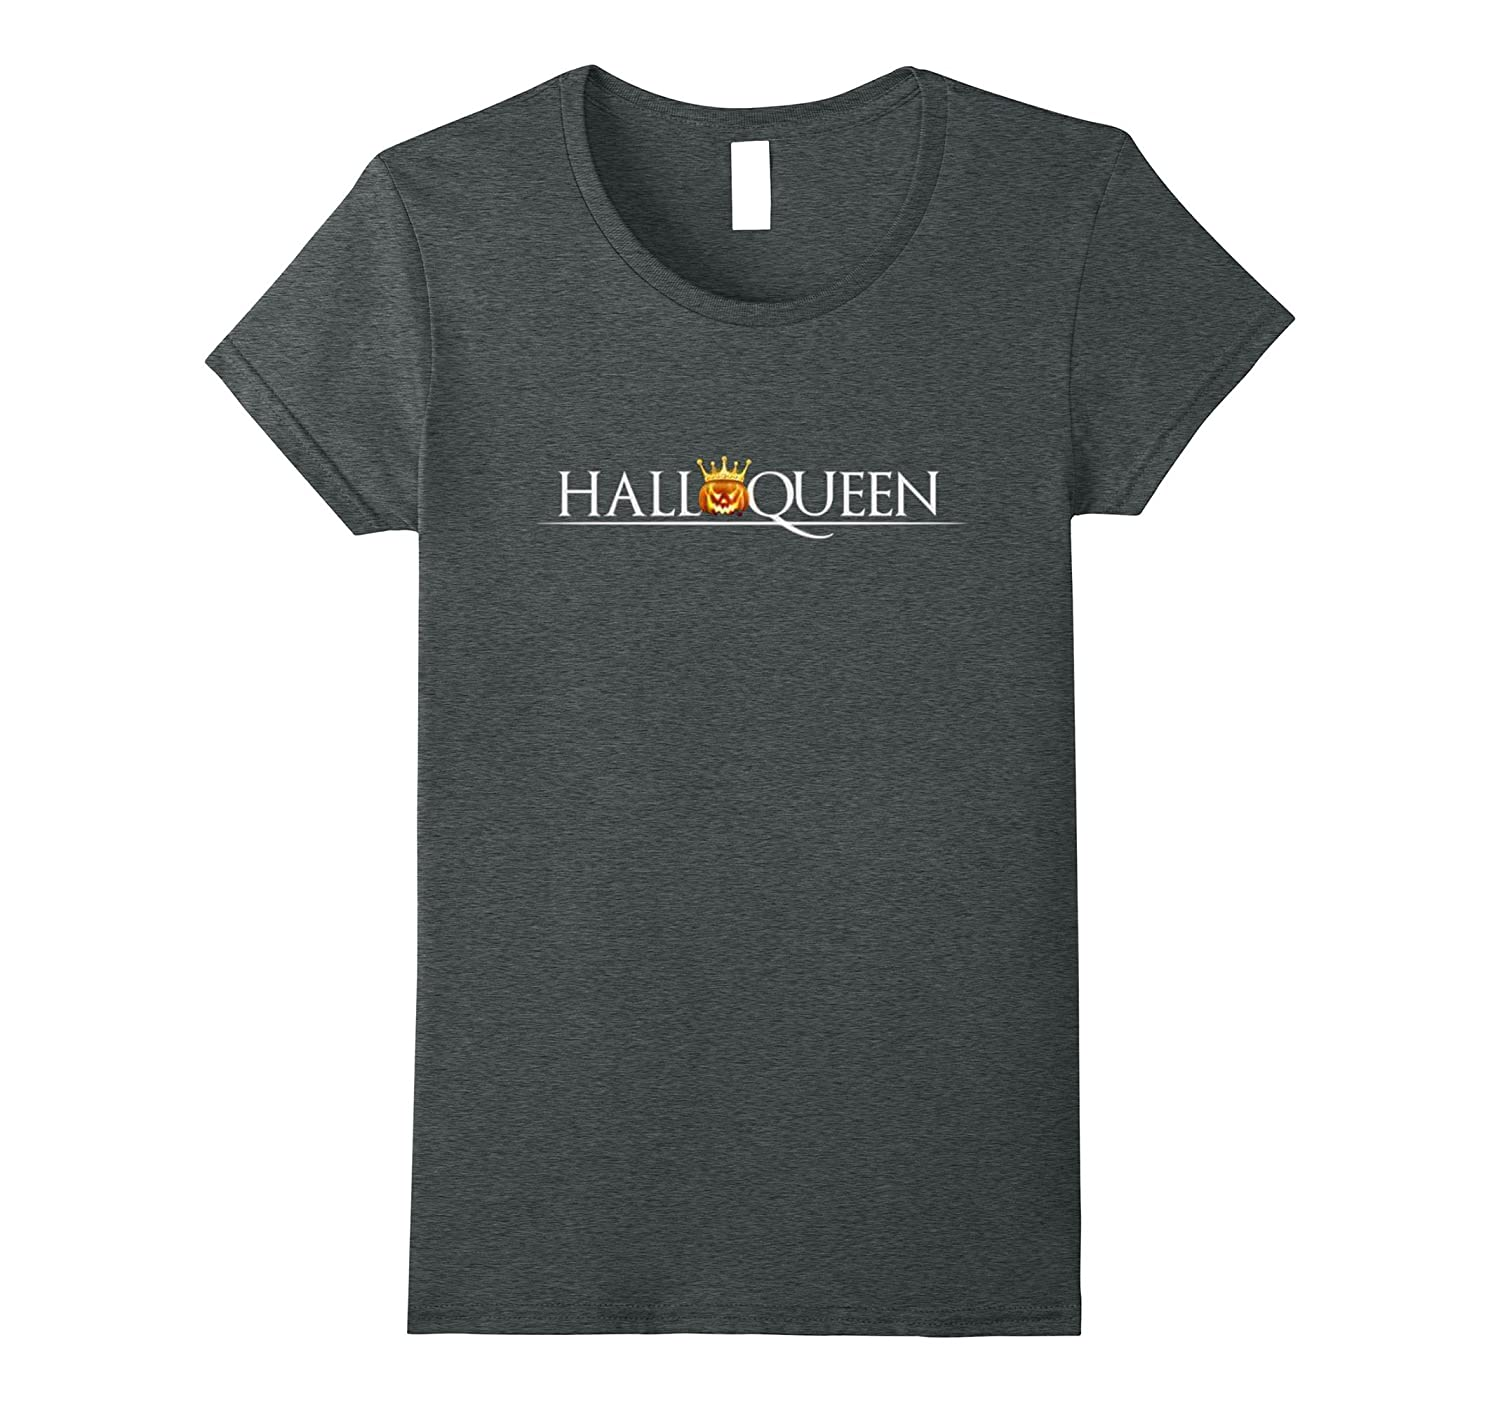 Halloqueen Shirt-Great Gifts For Halloween-Awesome Cute Tee.-BN